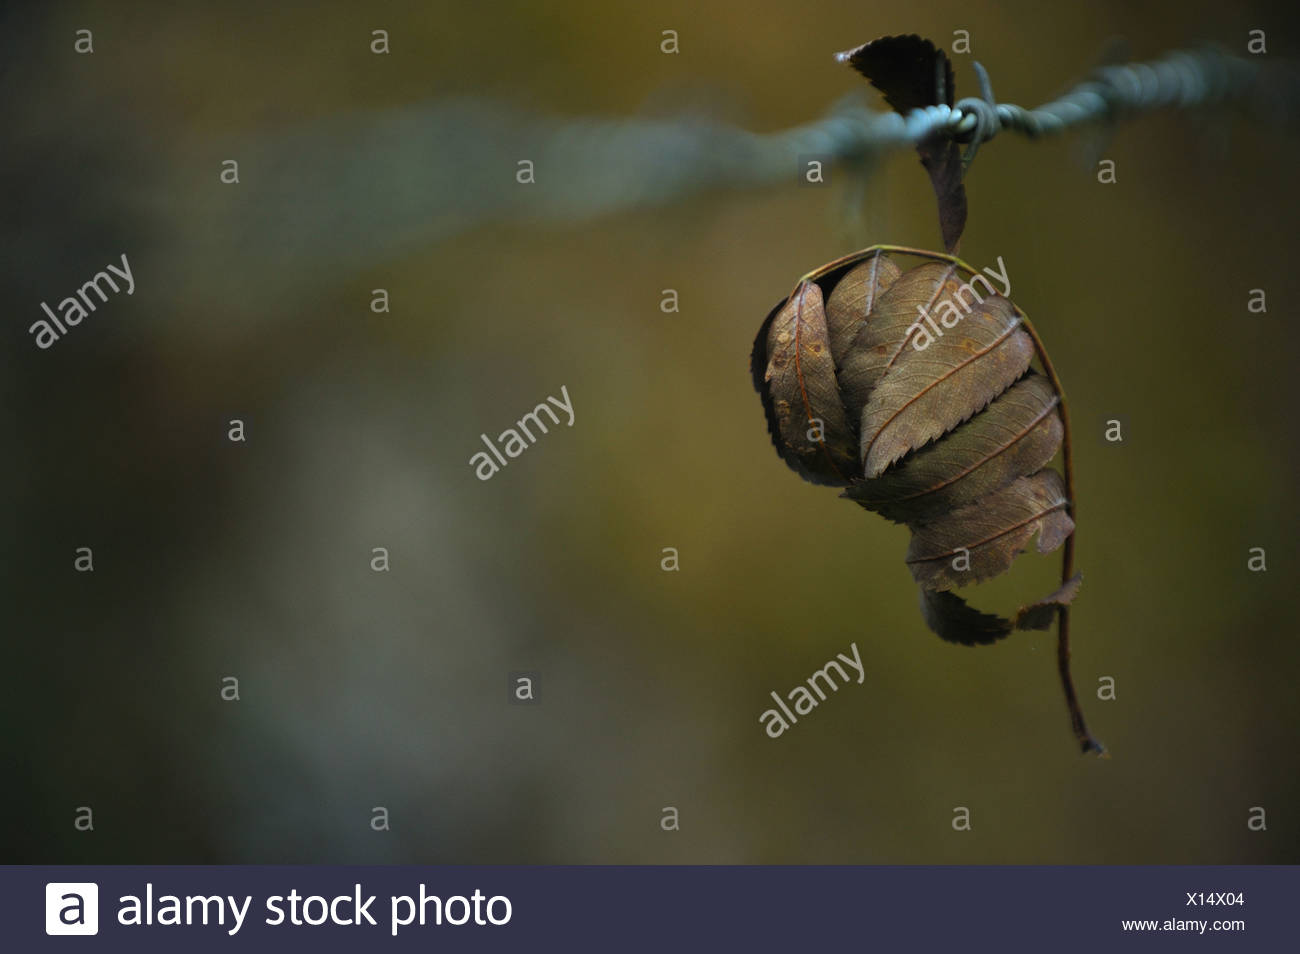 Closeup on leaf stuck on barbed wire - Stock Image